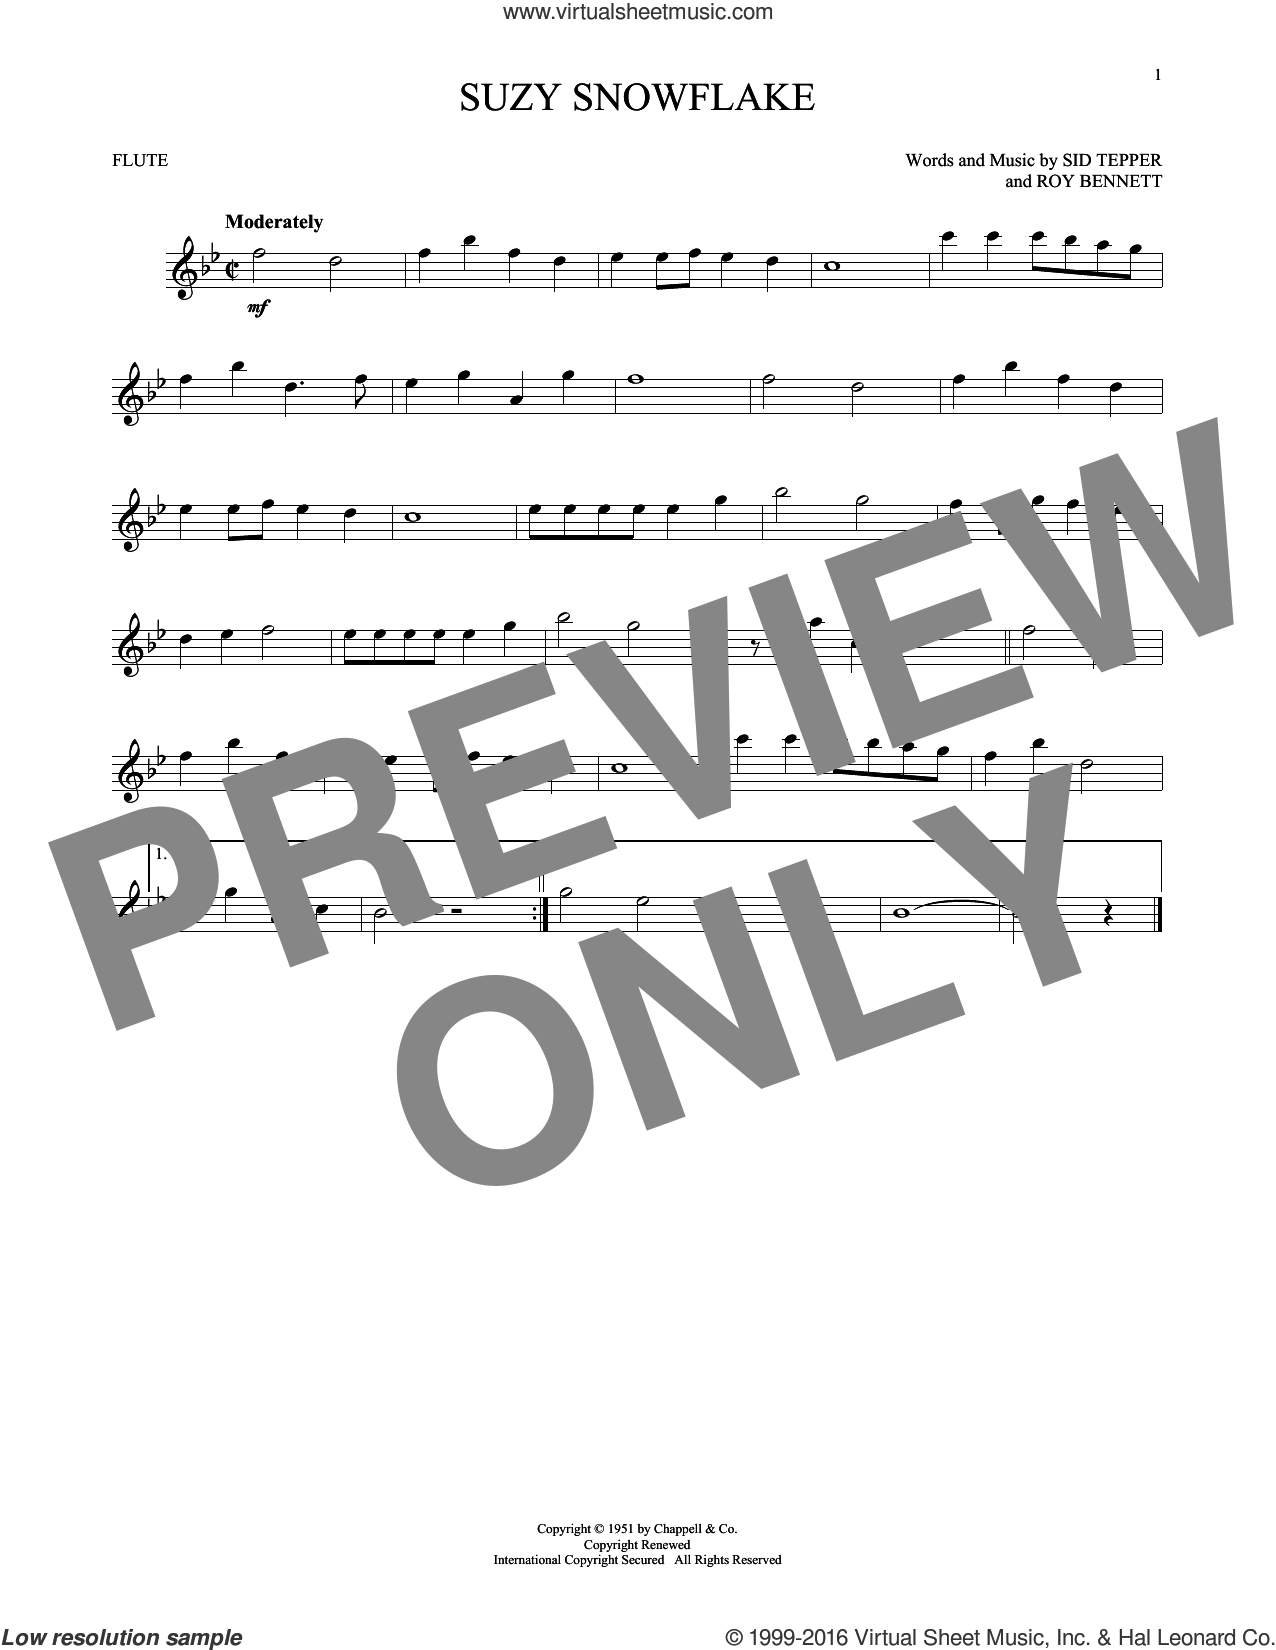 Suzy Snowflake sheet music for flute solo by Roy Bennett, Sid Tepper and Sid Tepper and Roy Bennett, intermediate skill level